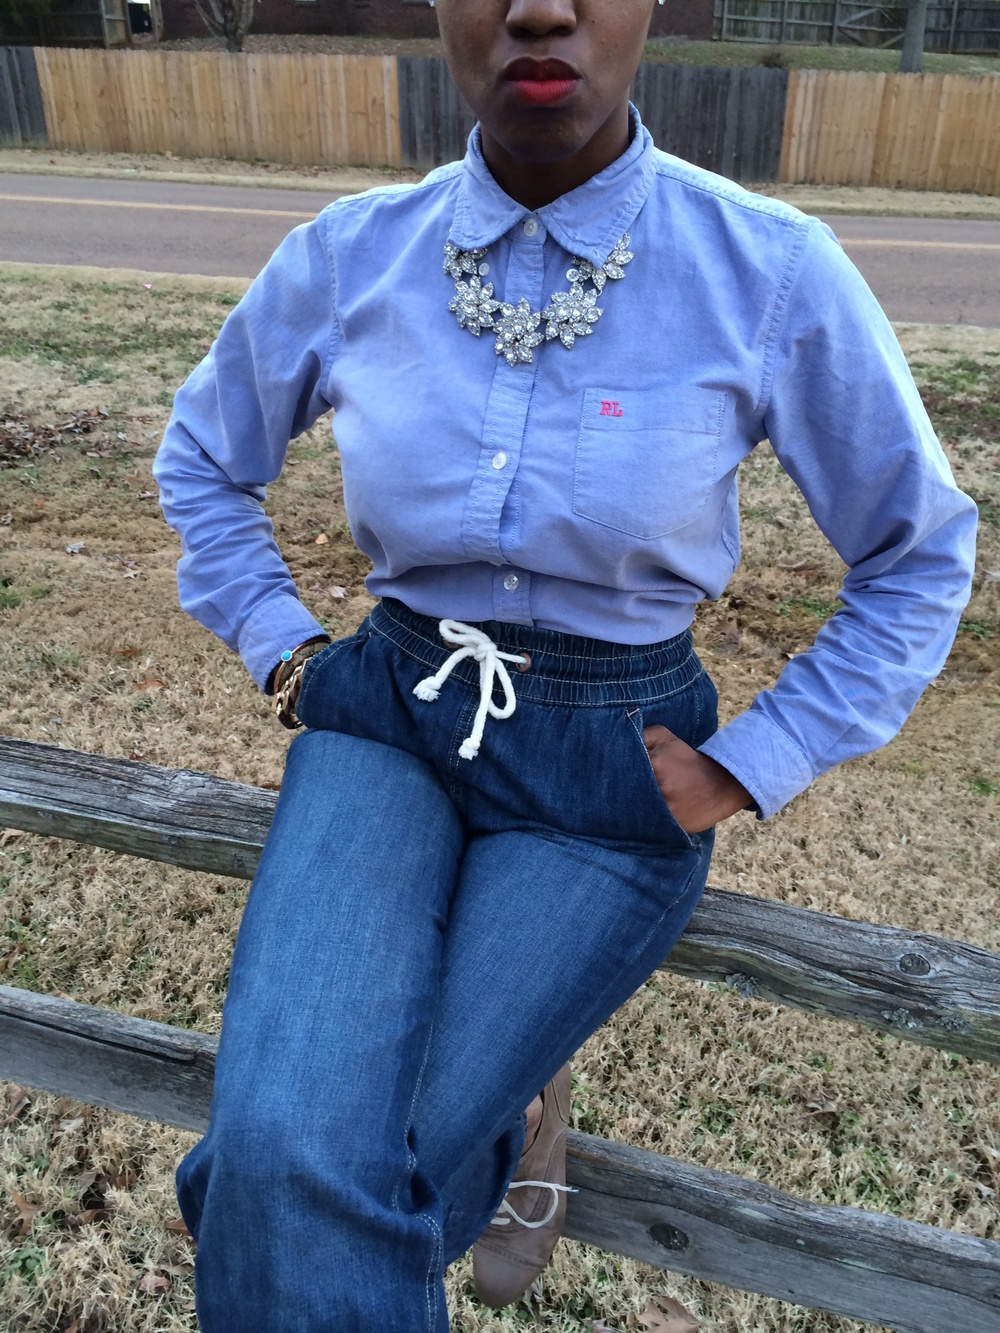 outfit details: shirt: Ralph Lauren, thifted; jeans: H&M; shoes: Forever 21; necklace: Versona